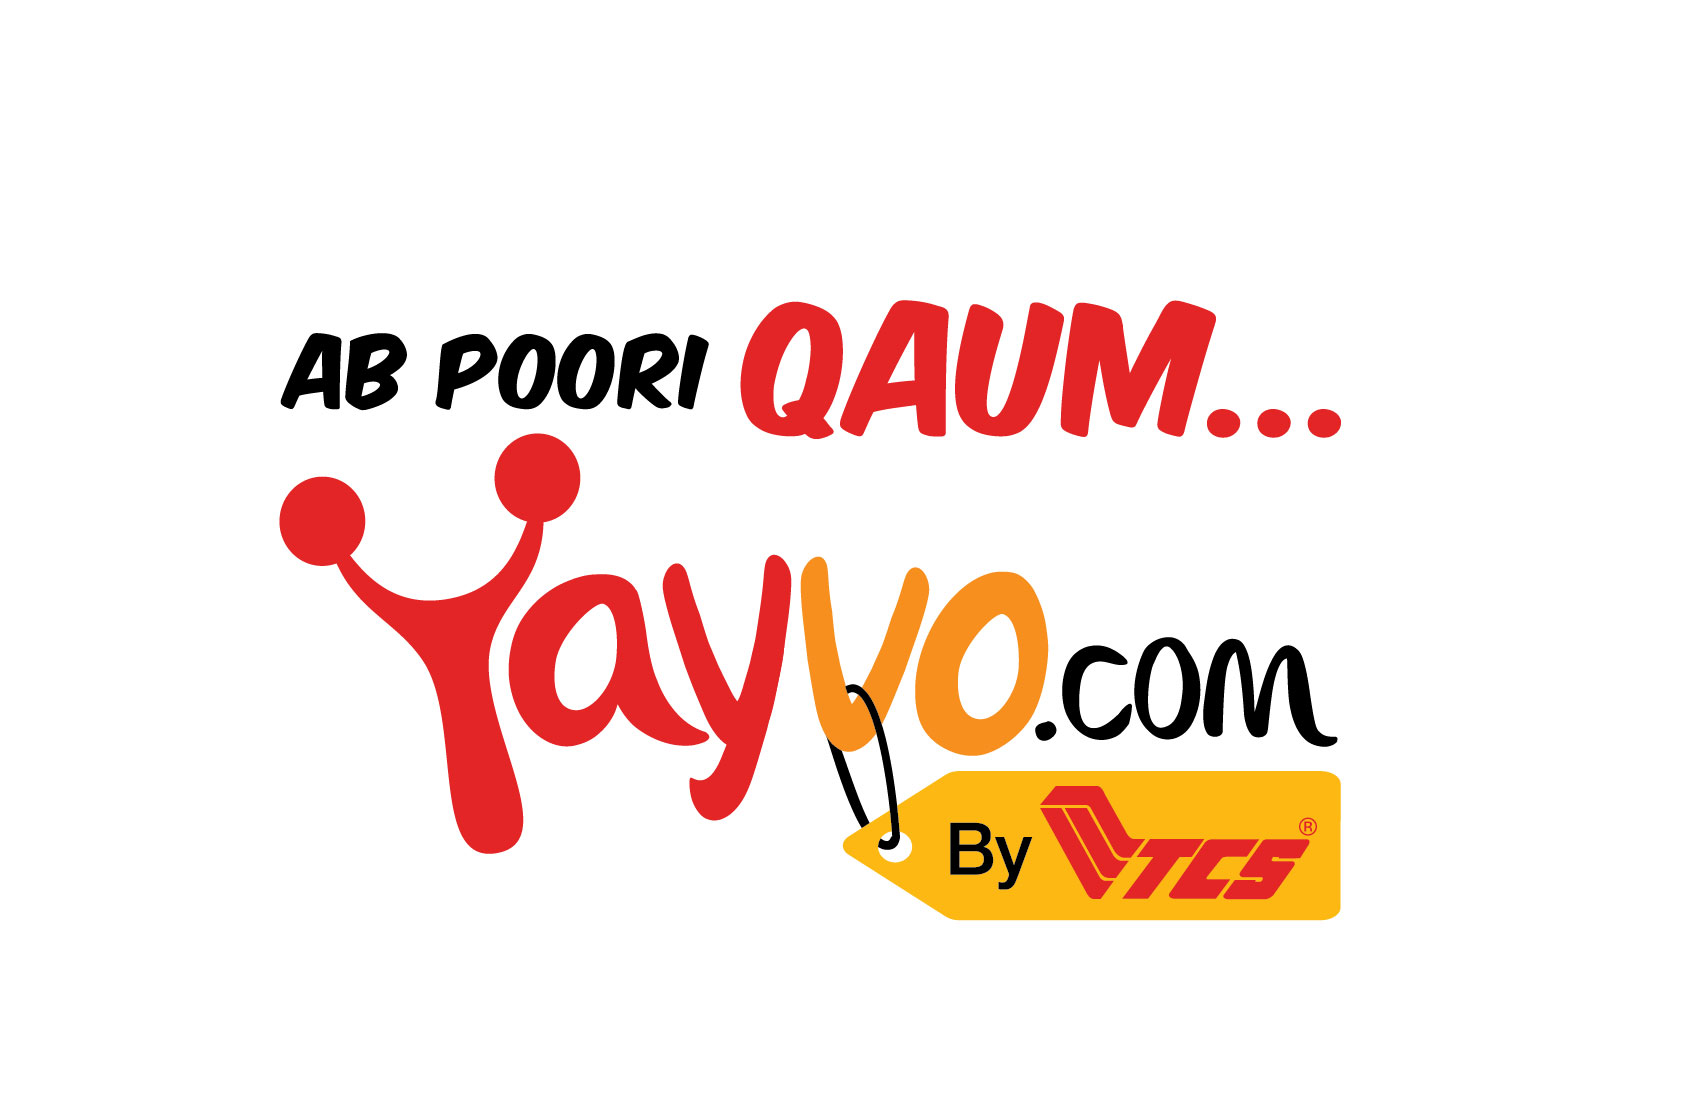 Pakistan's First Ever Online Shopping Day on Yayvo.com